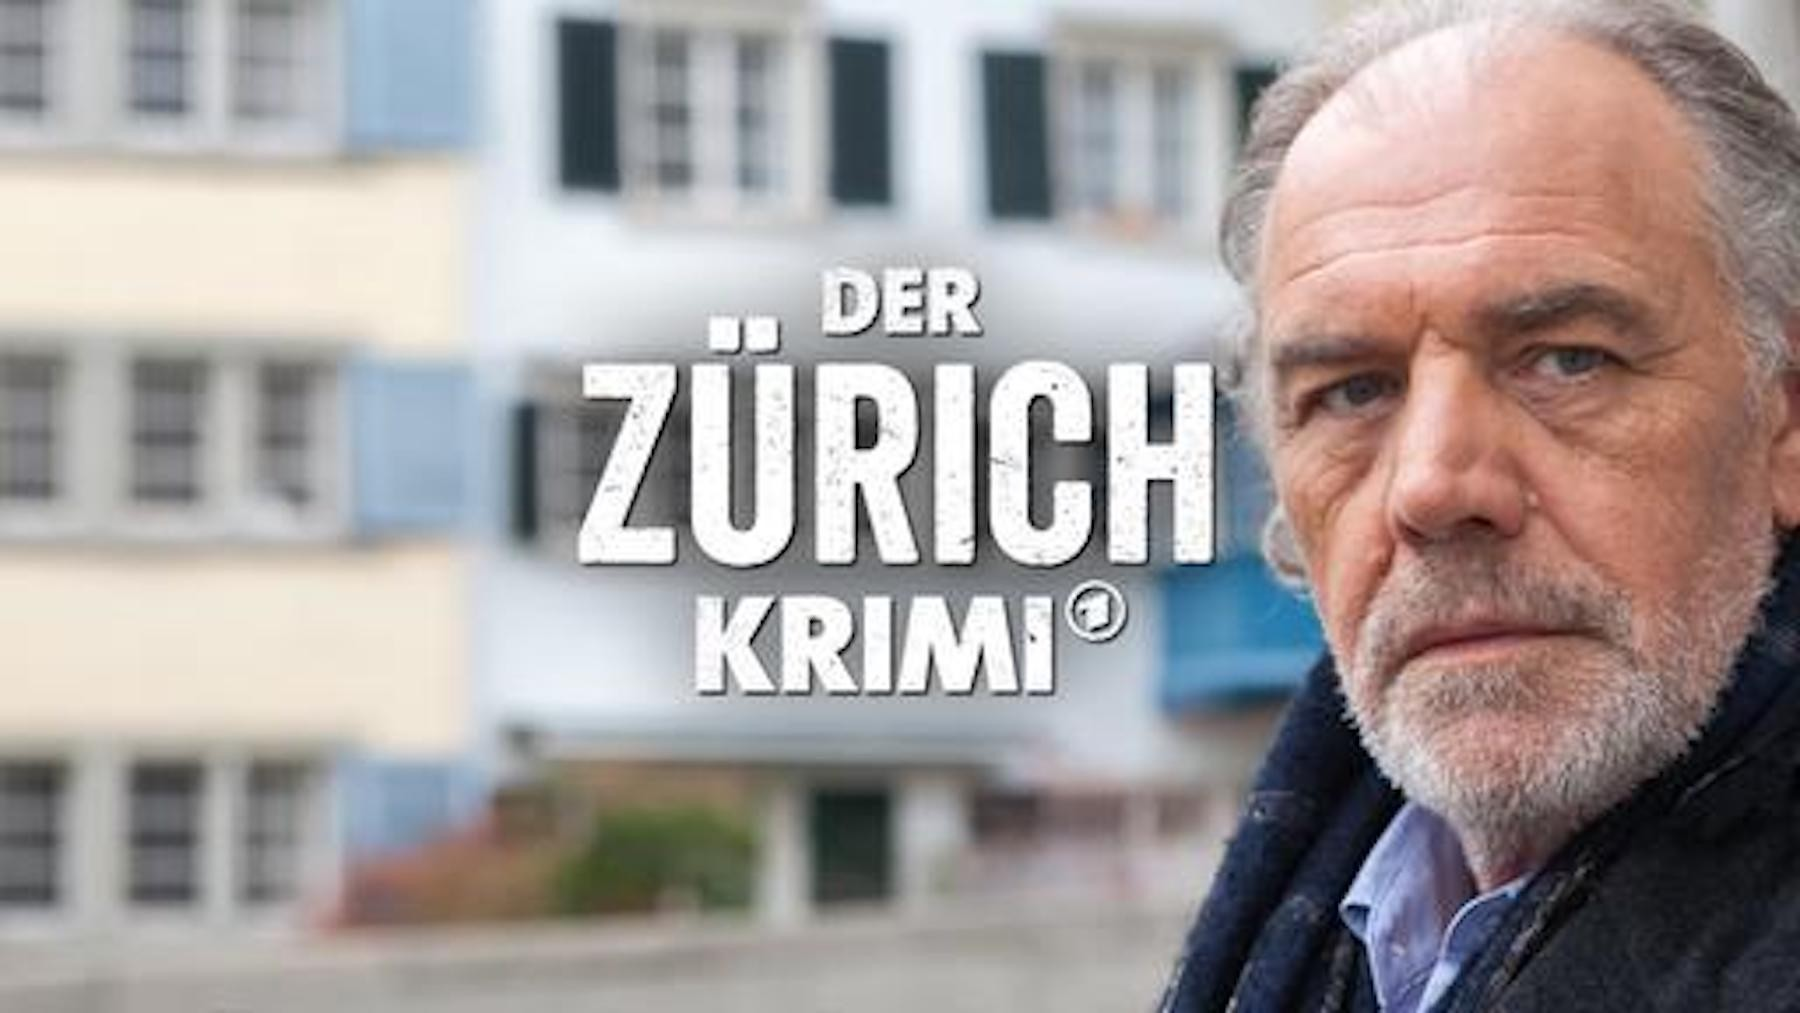 Der Zürich-Krimi - moonrocketfilms tv